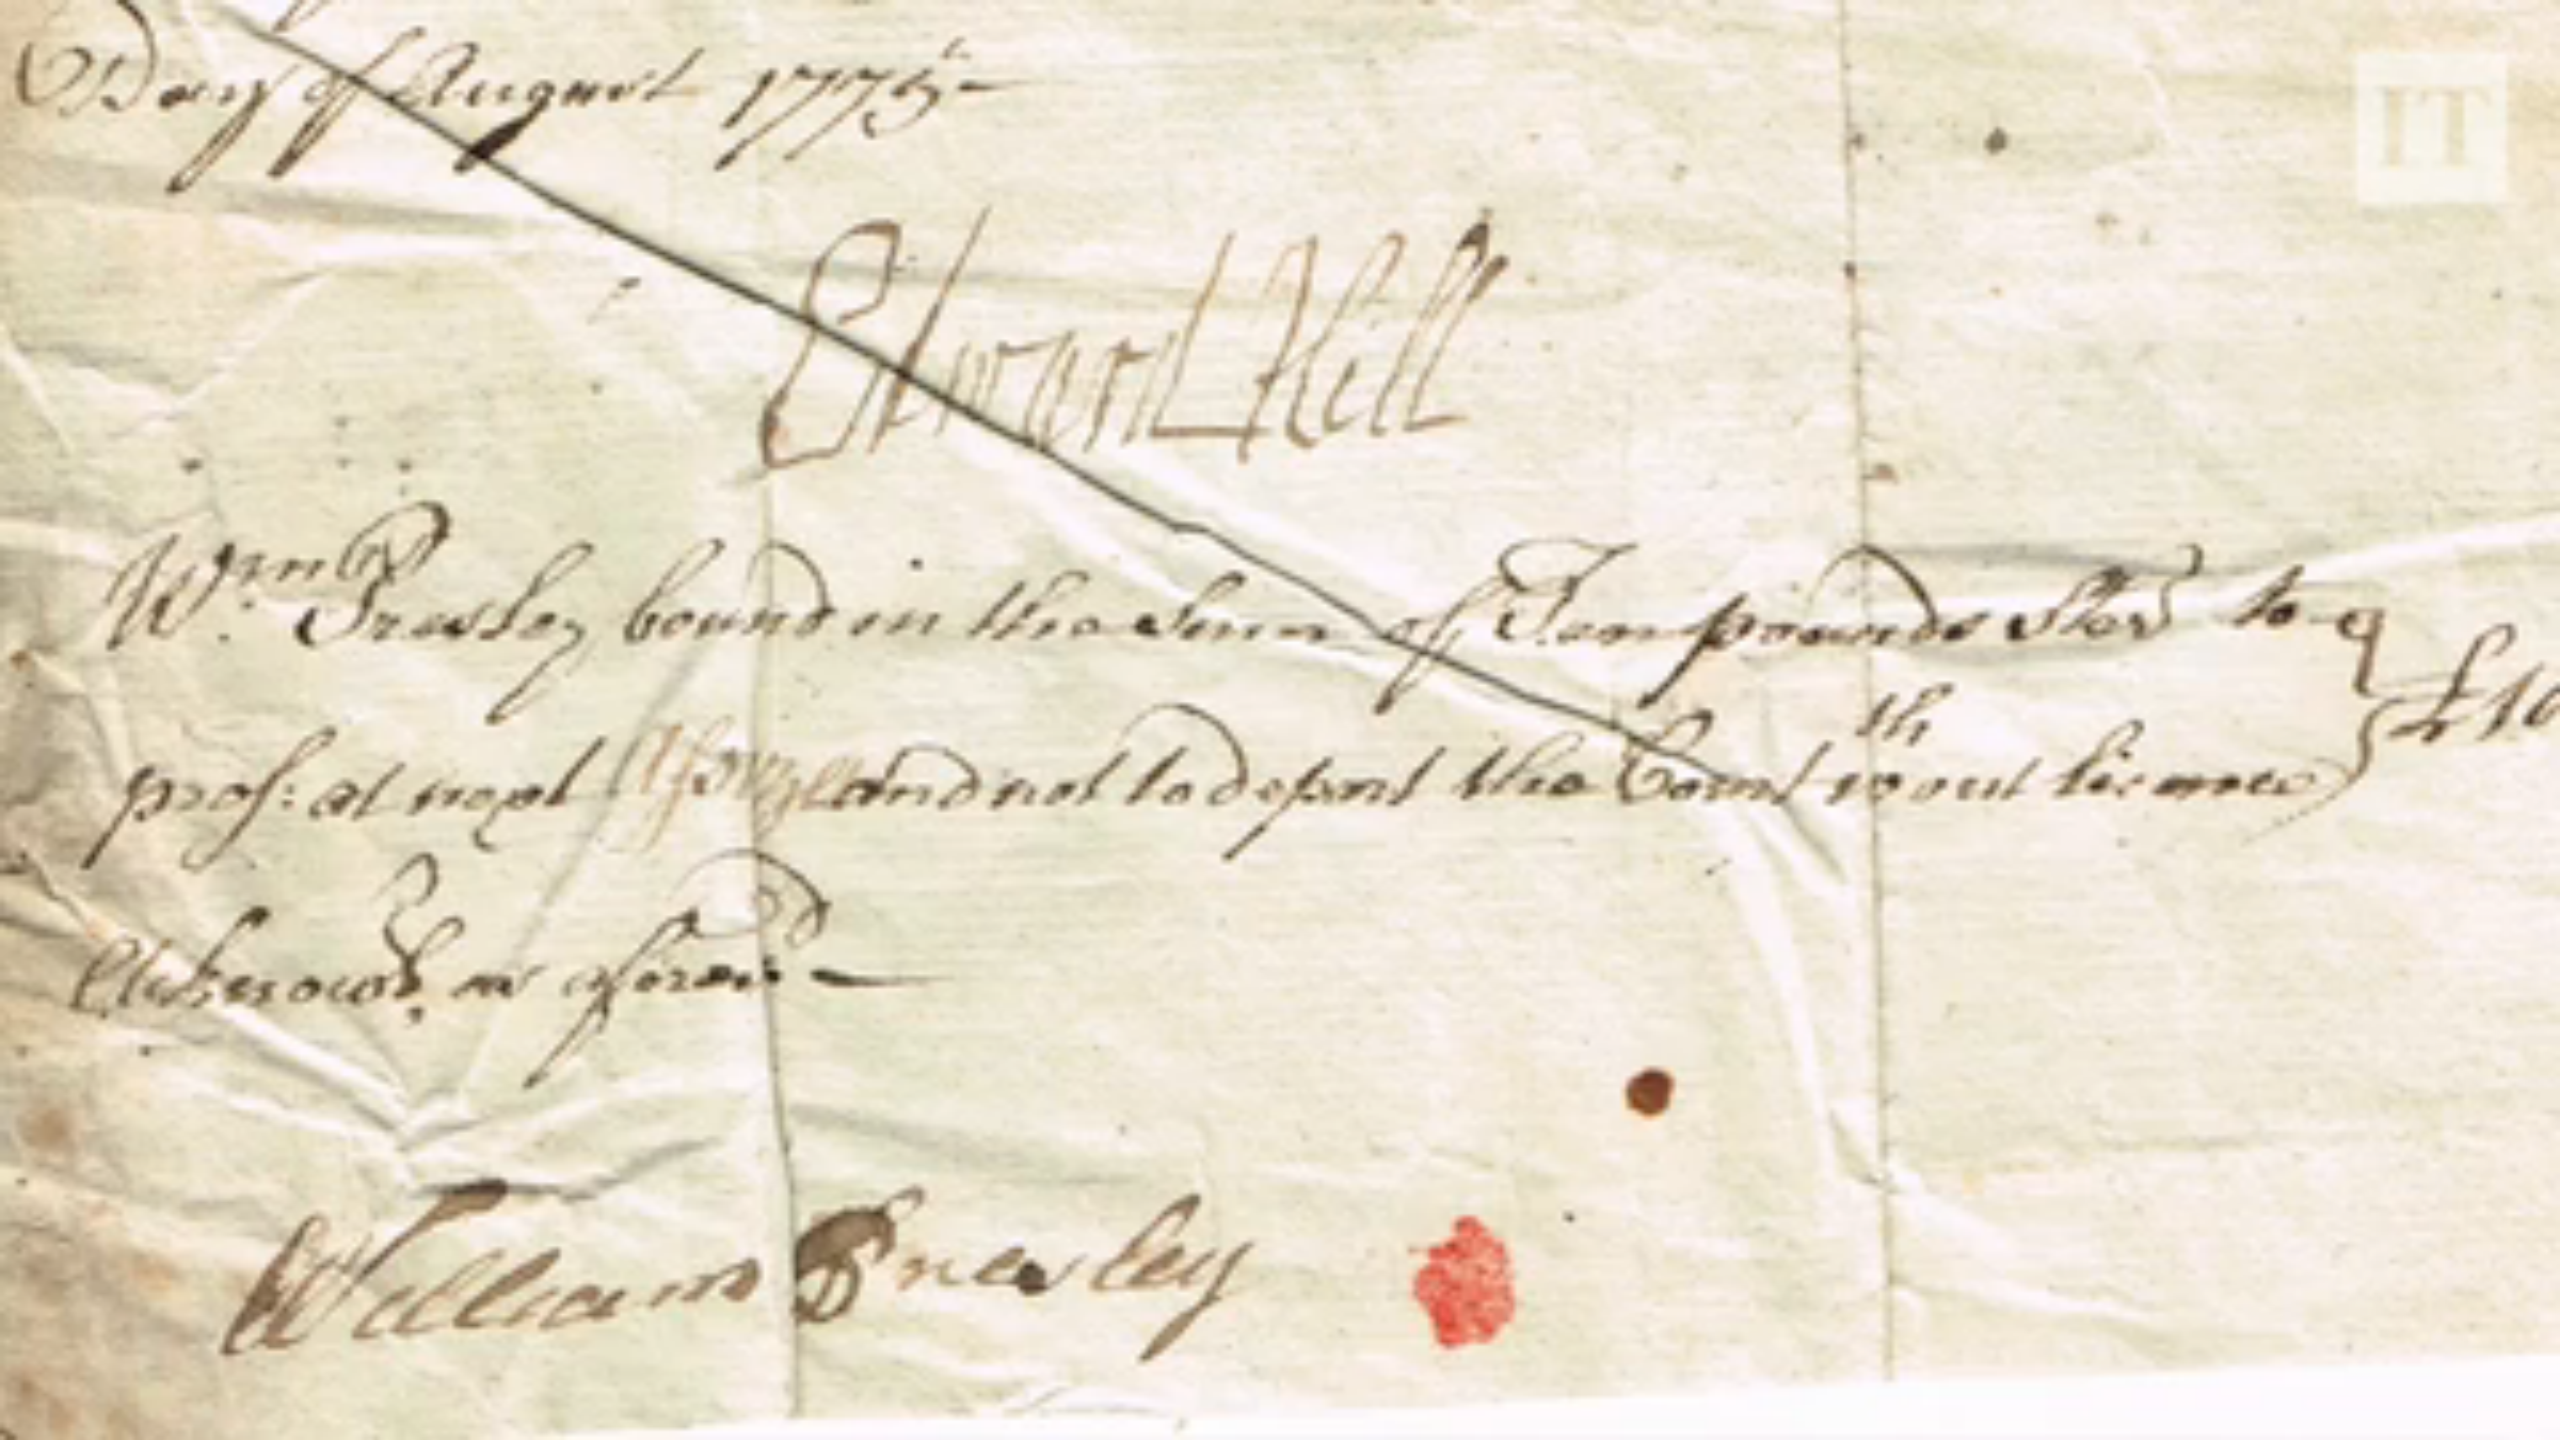 William Presley's signature.